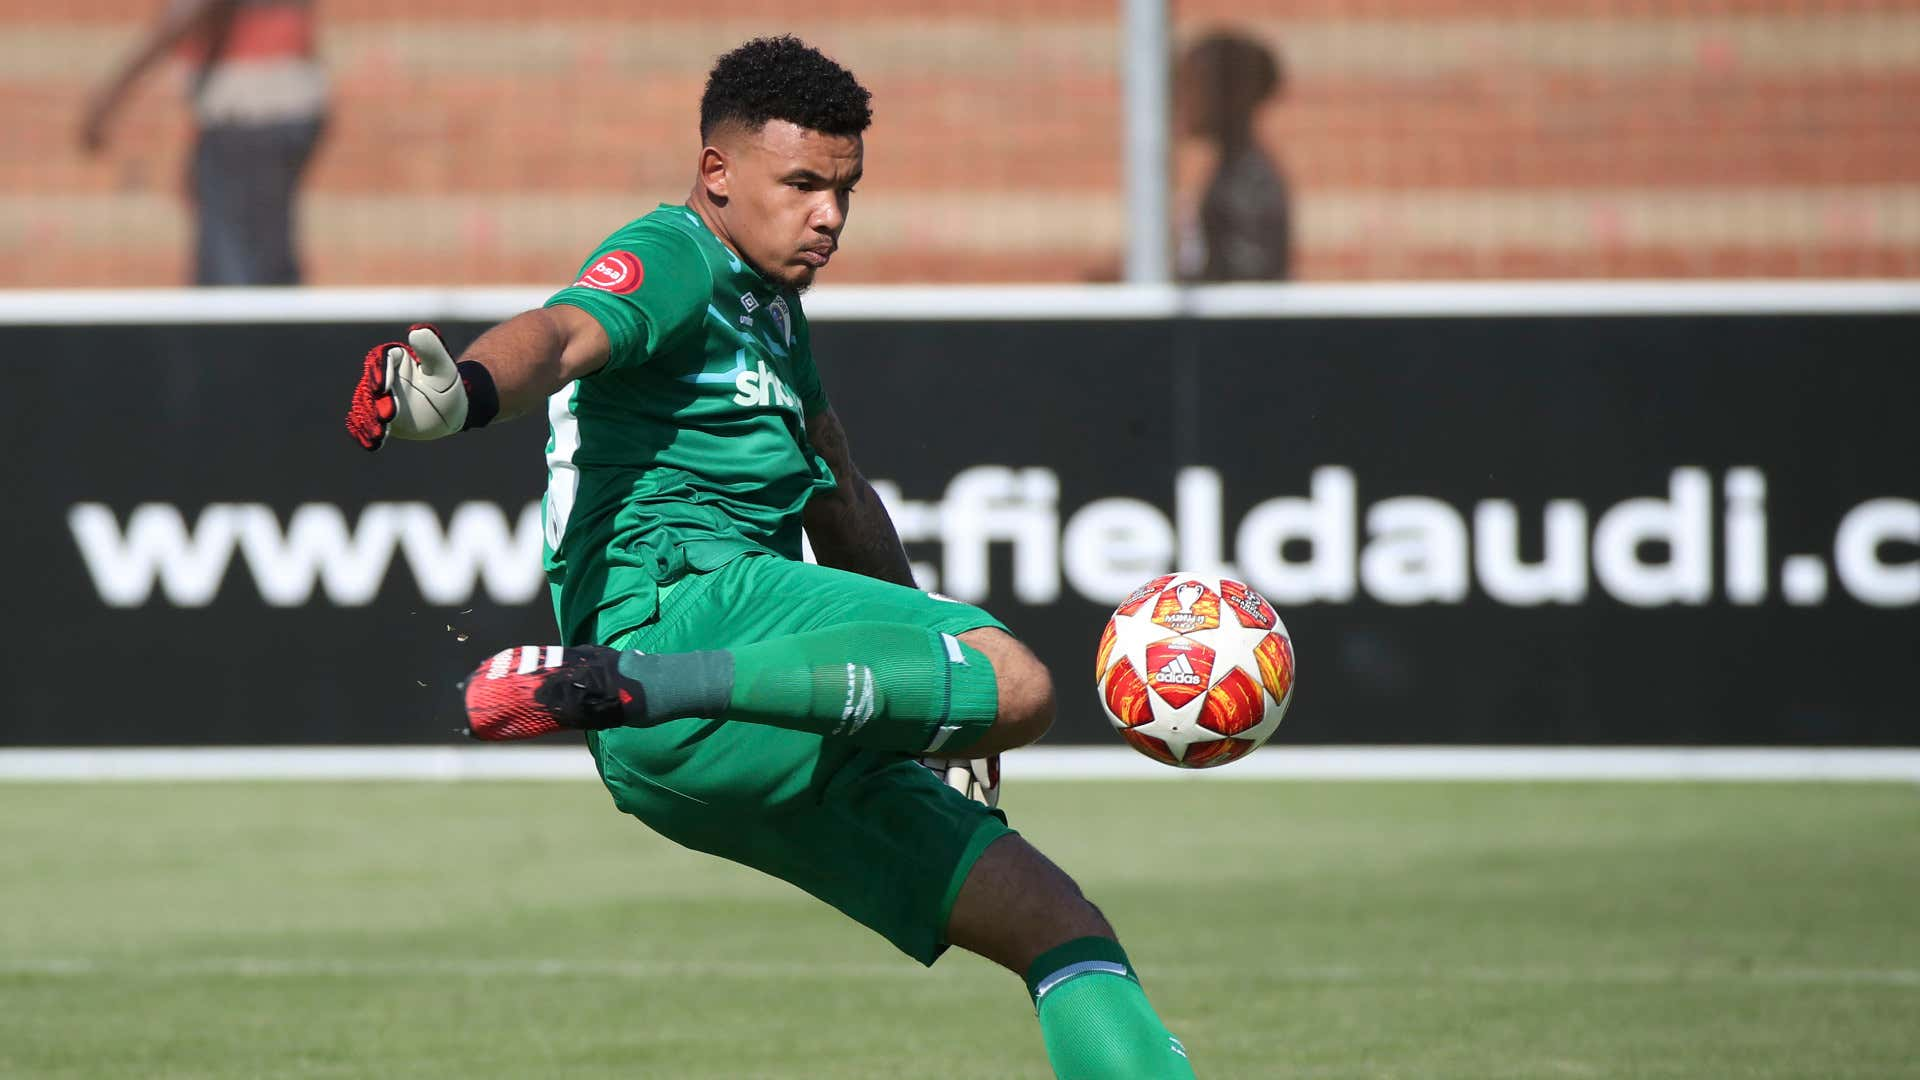 'SuperSport United have to go out there and dominate Kaizer Chiefs' – Williams